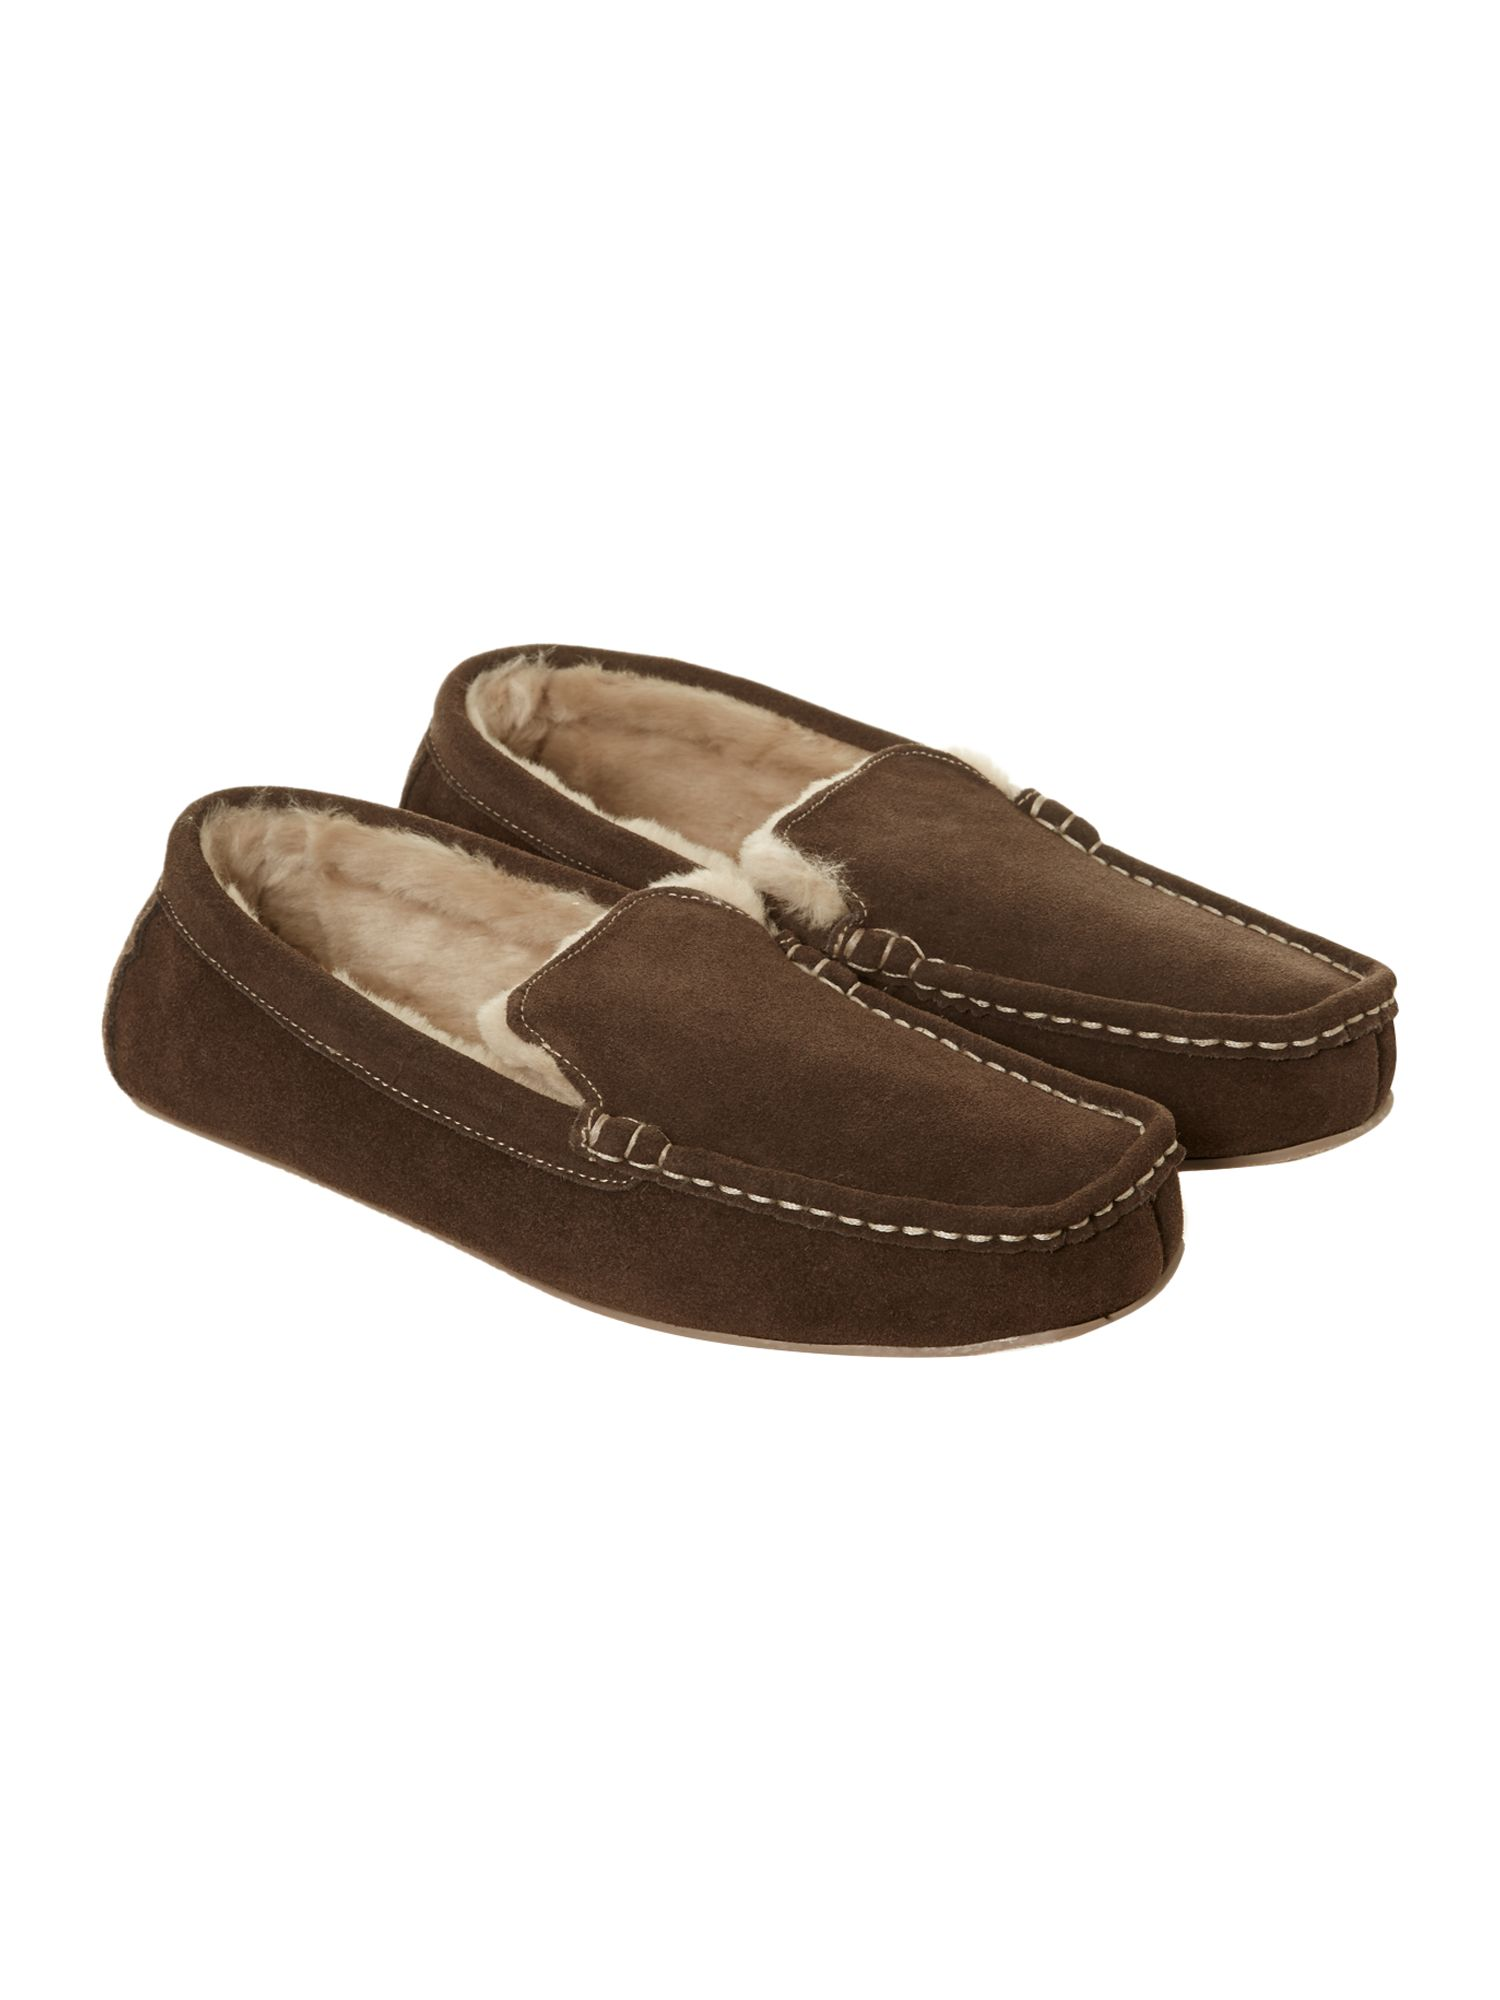 Chocolate suede moccasin